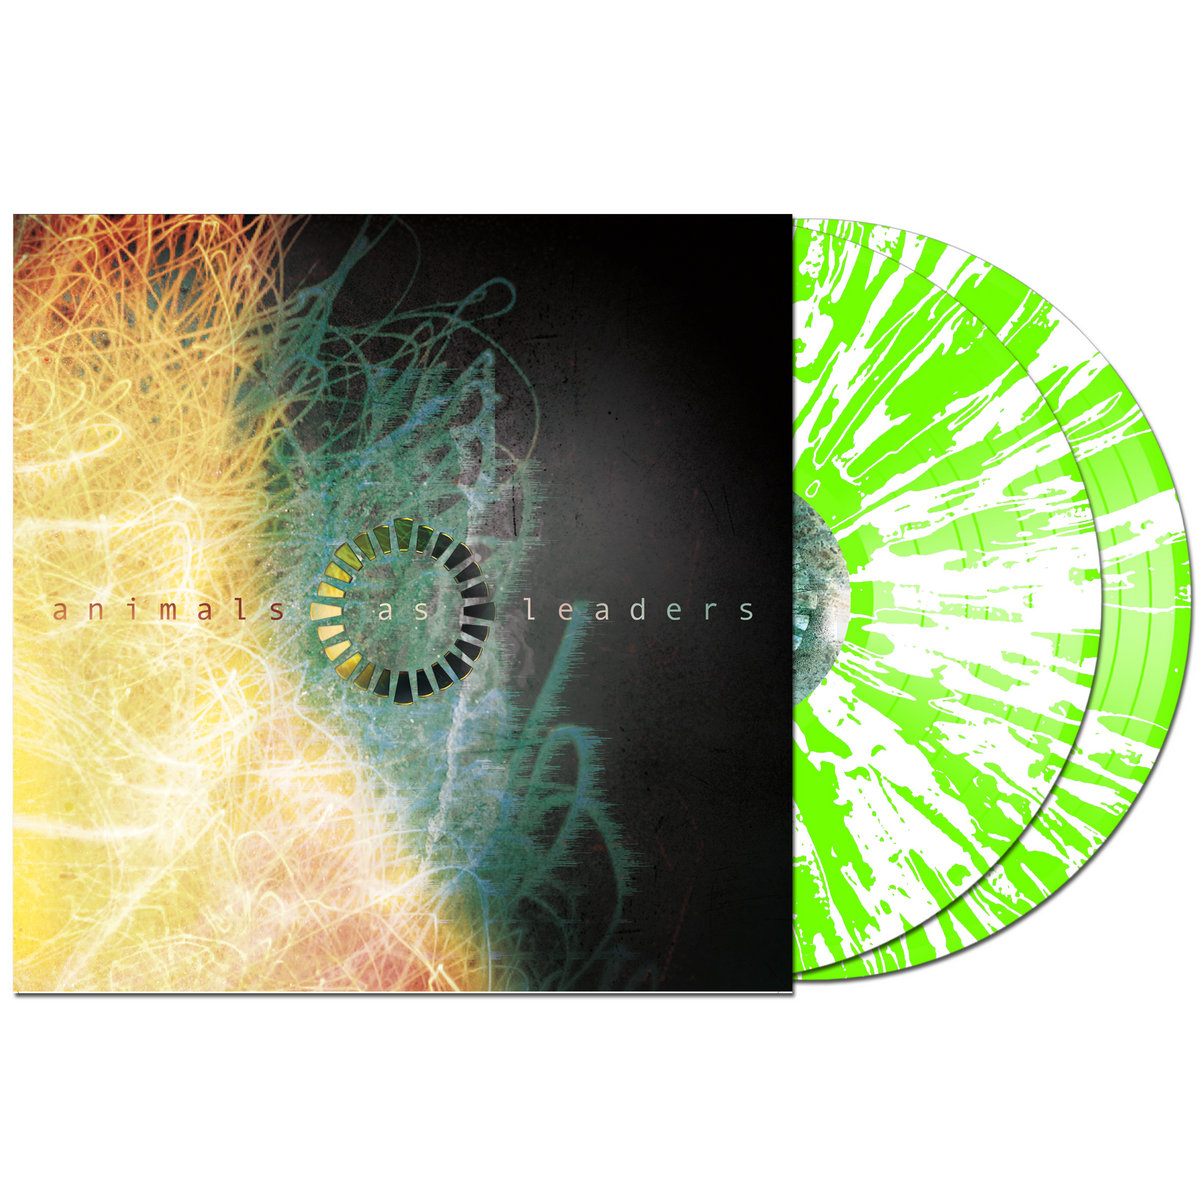 Animals as leaders the madness of many downloaded